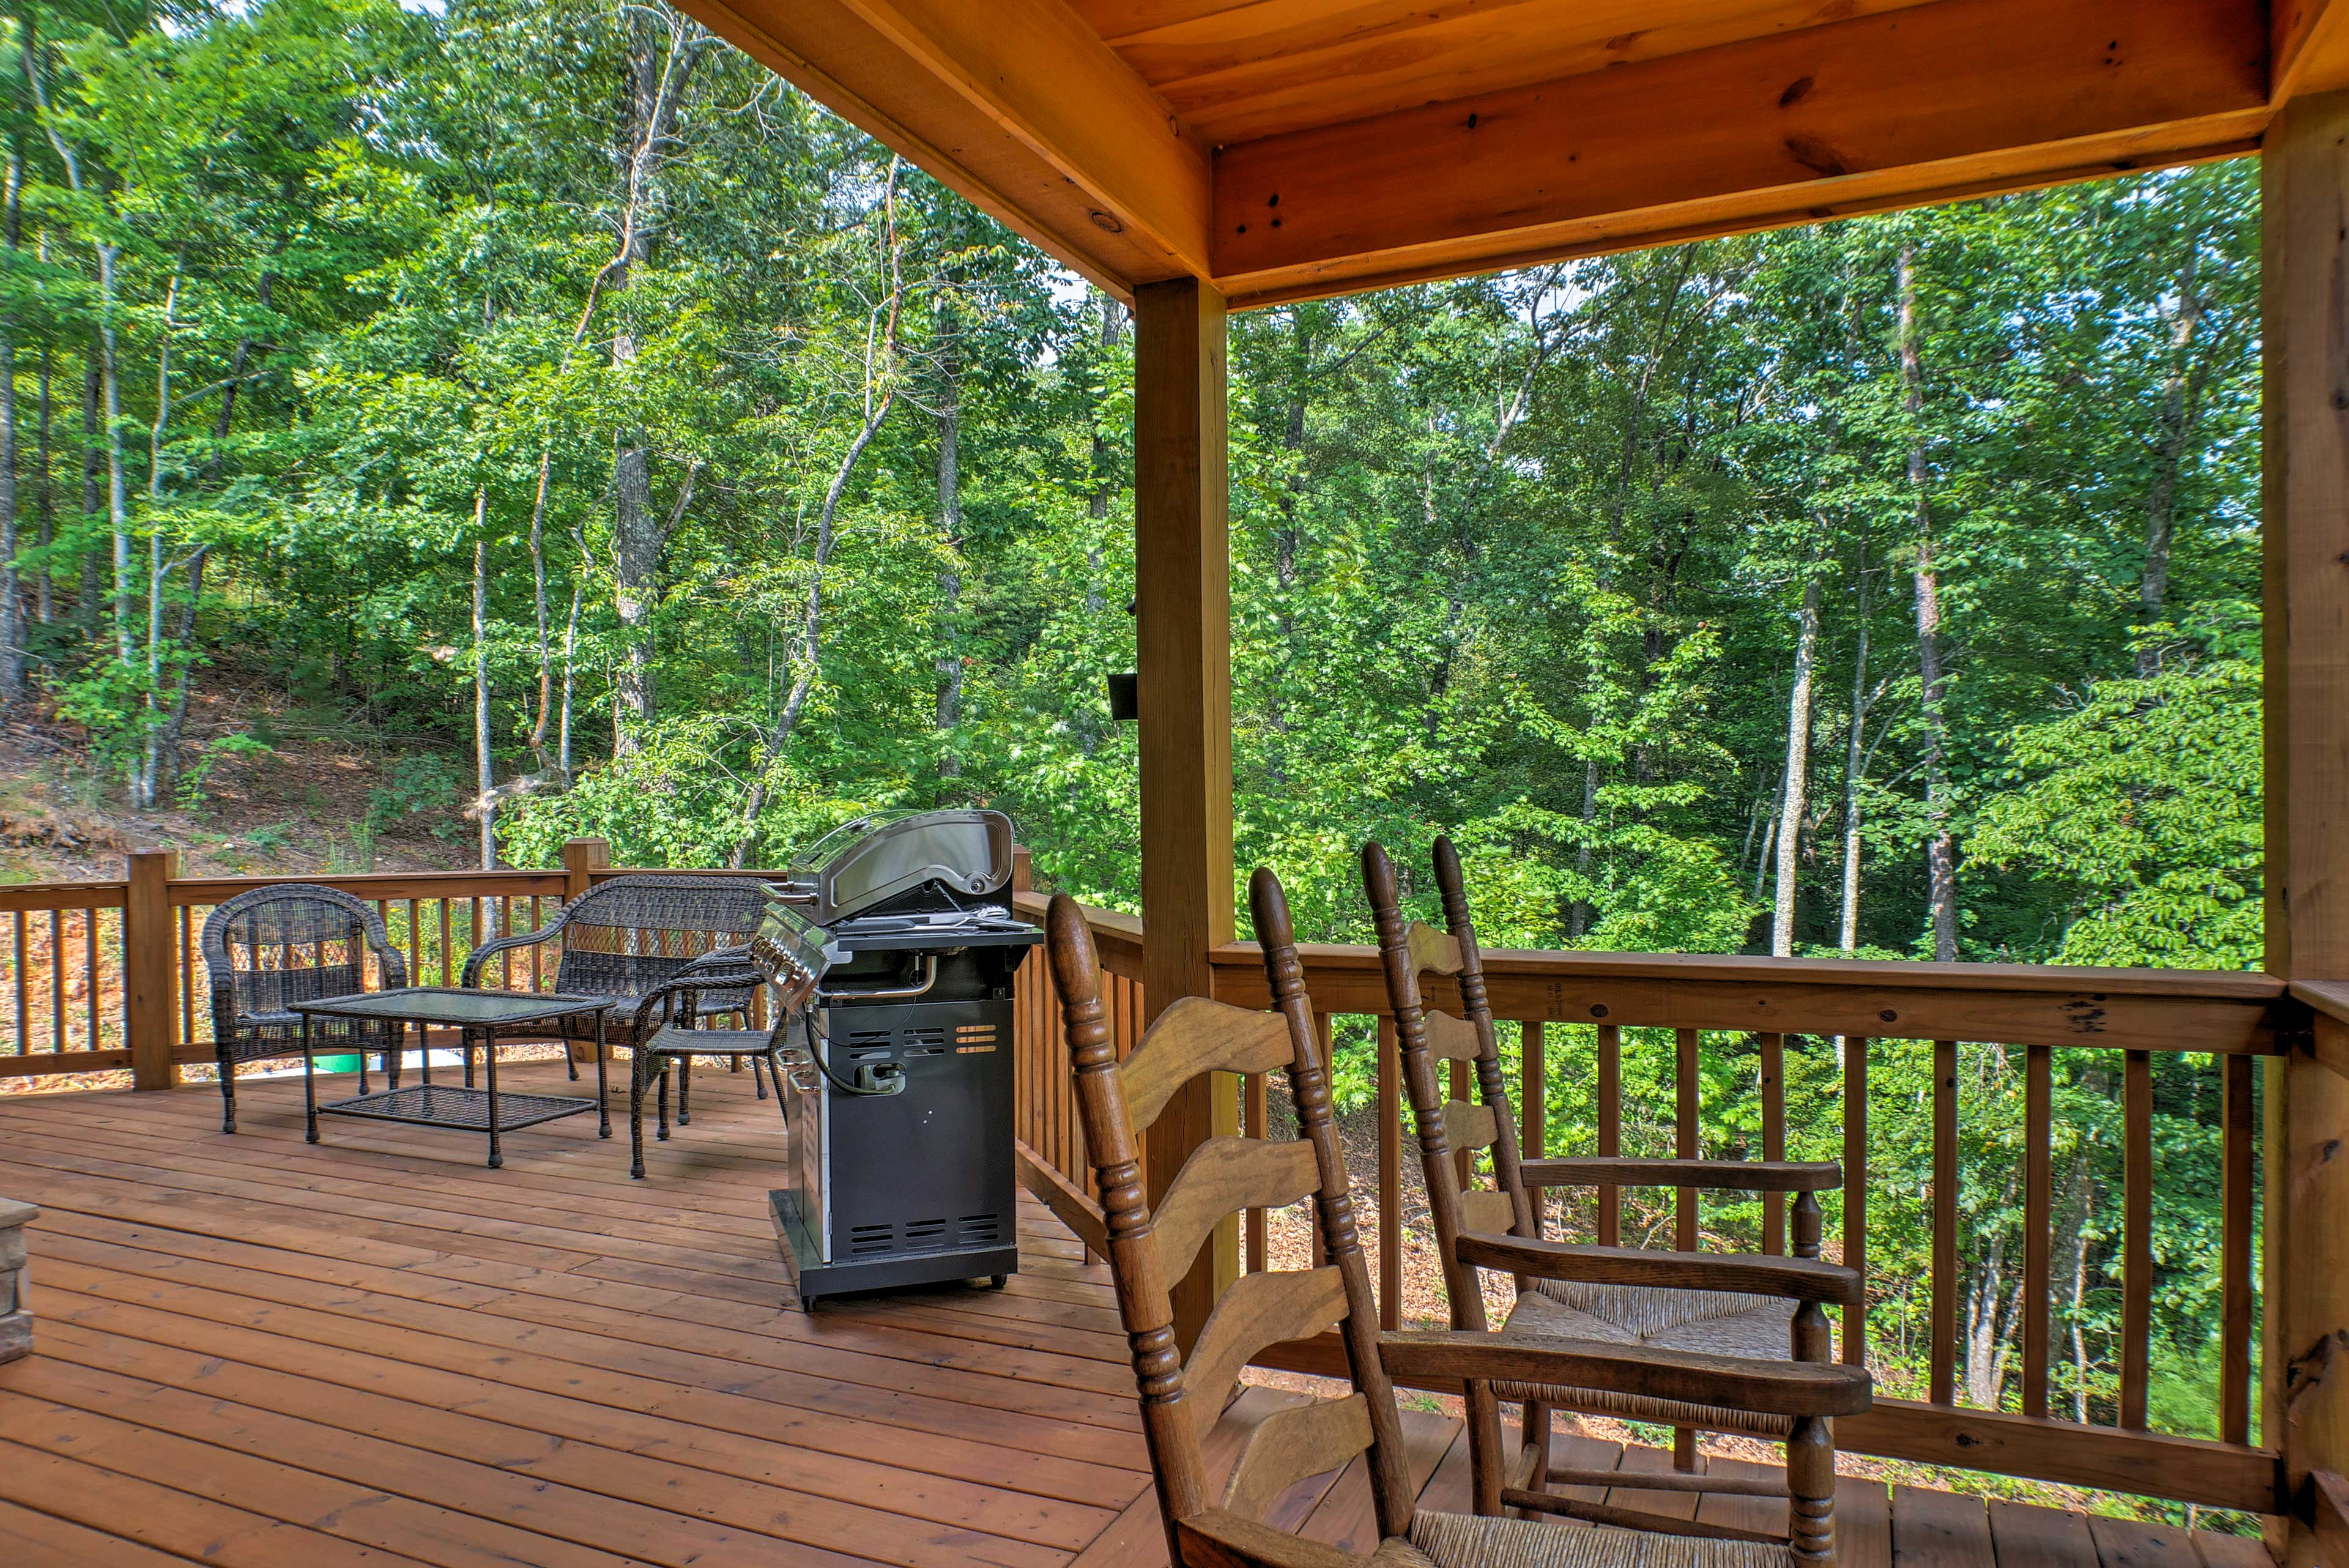 This deck includes ample seating and a gas grill.